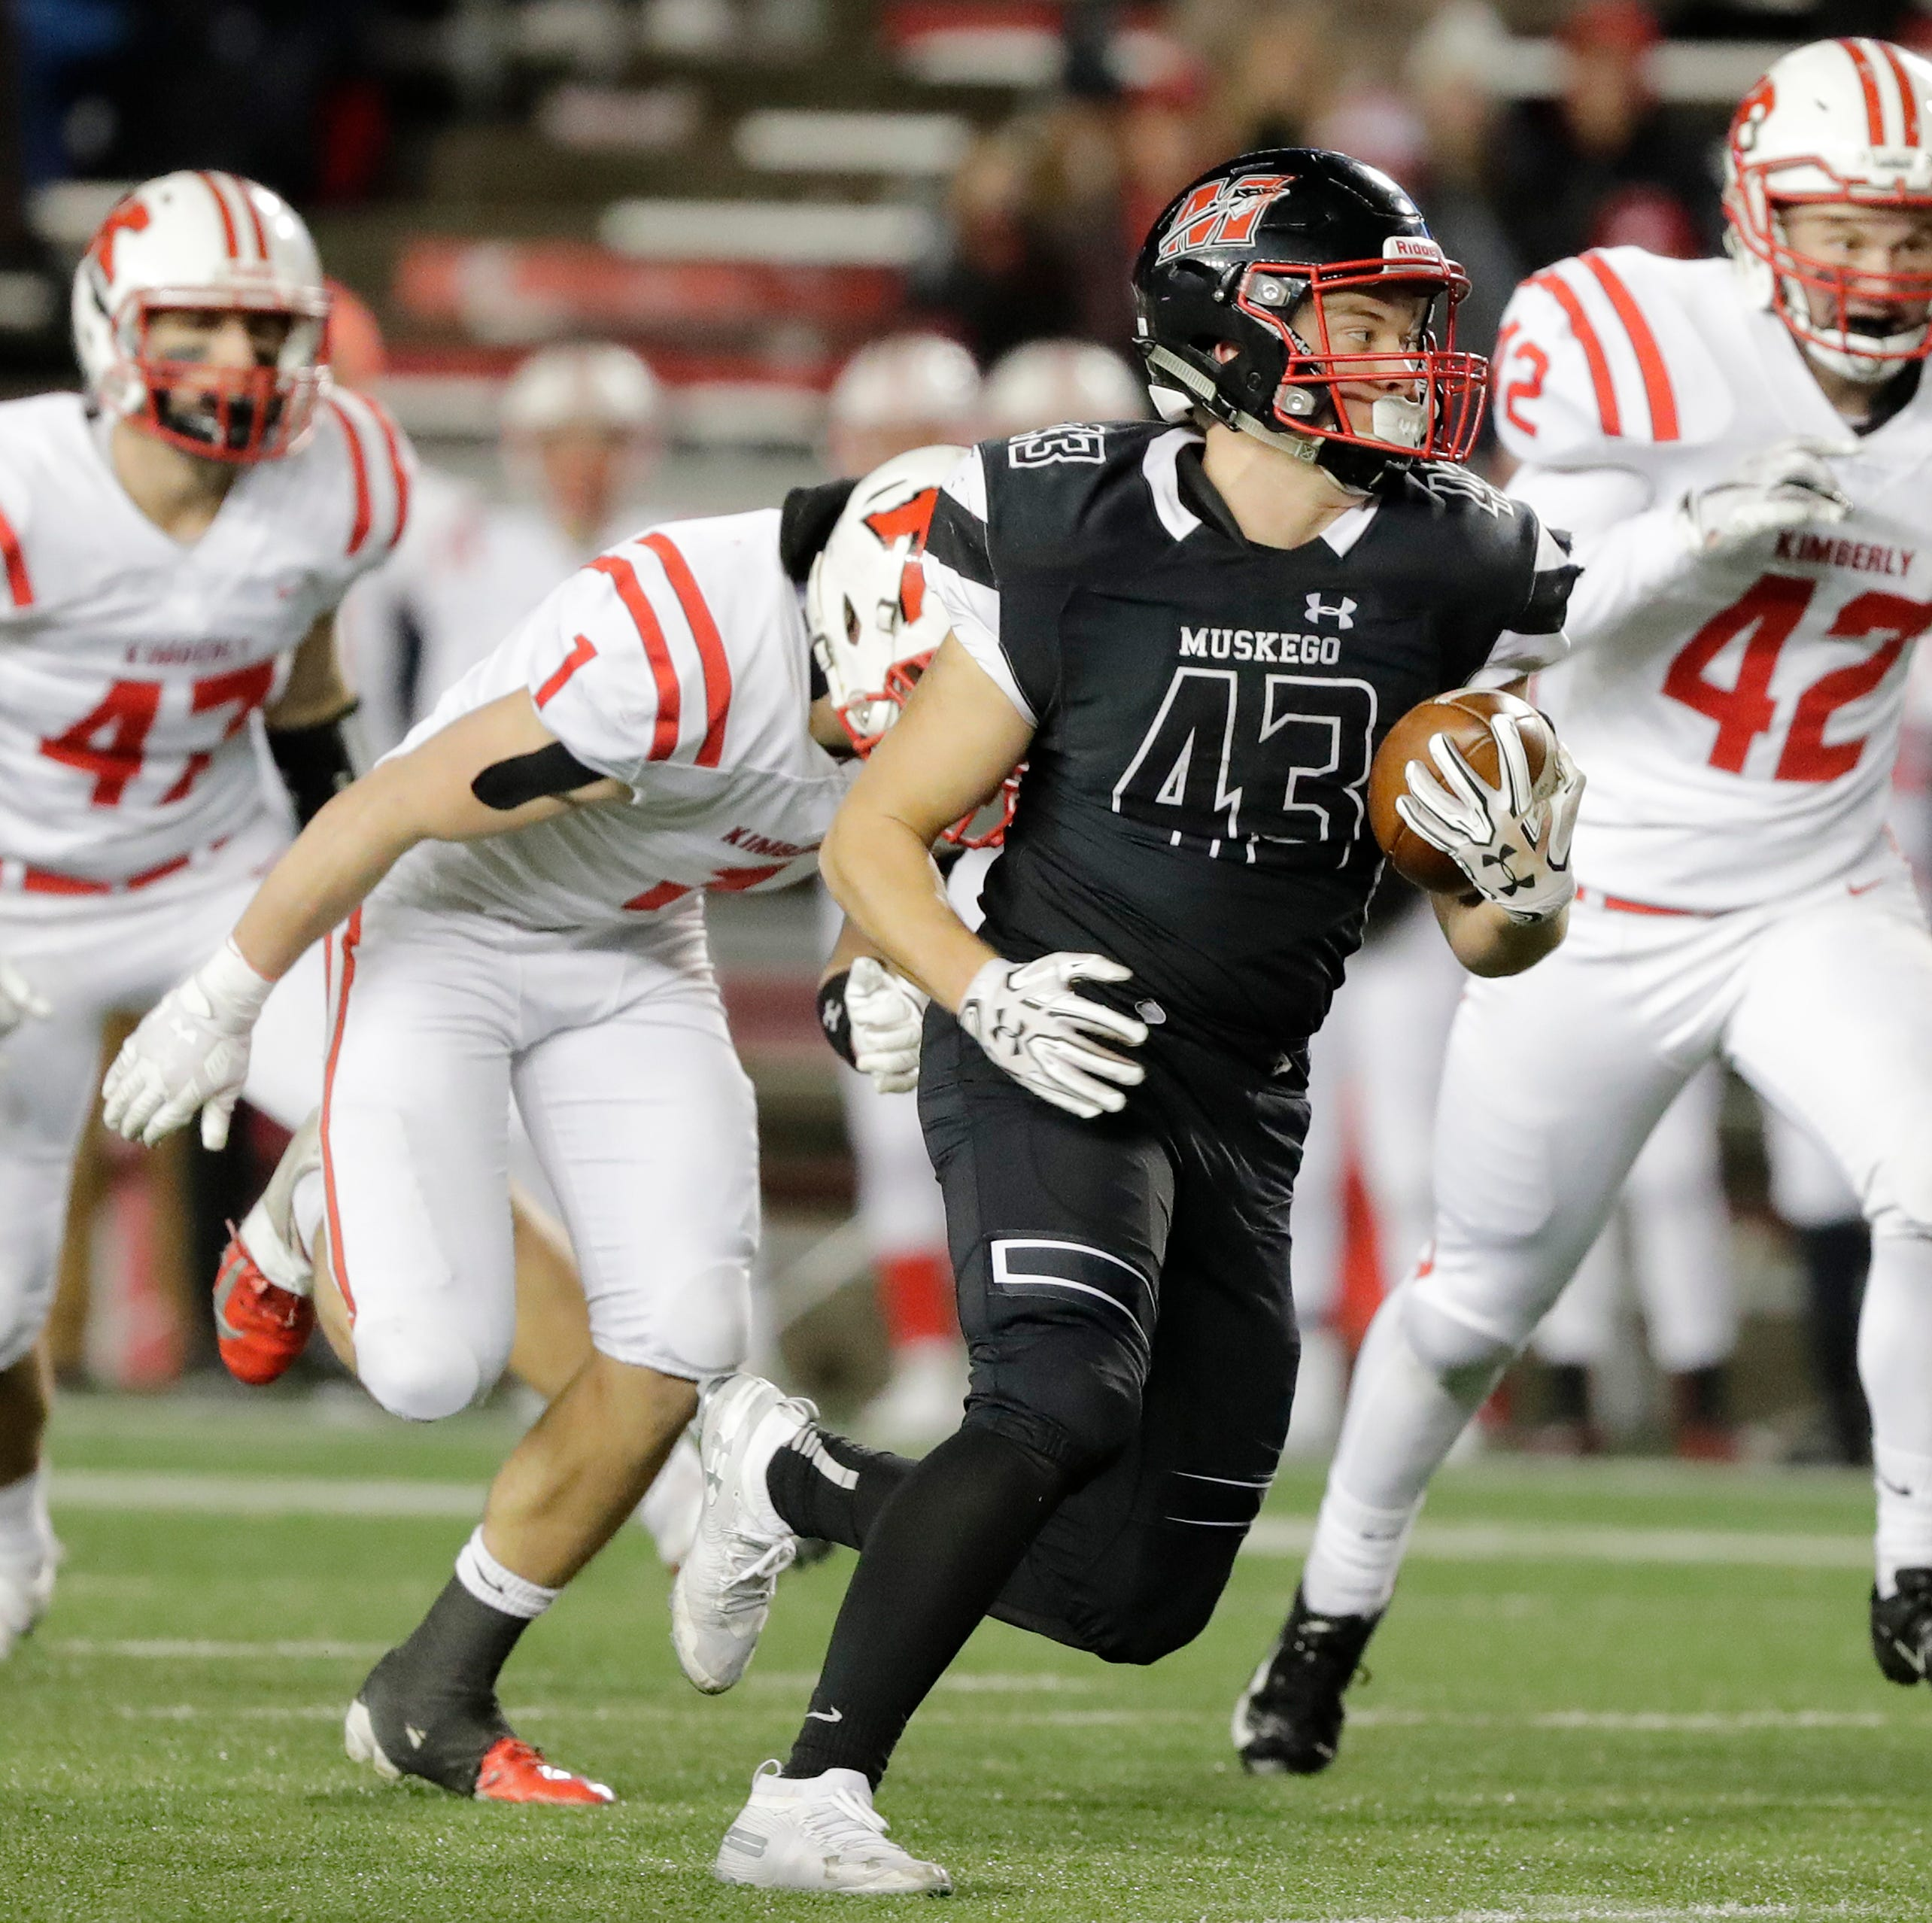 WIAA state football: Kimberly did all it could to ground Muskego running game